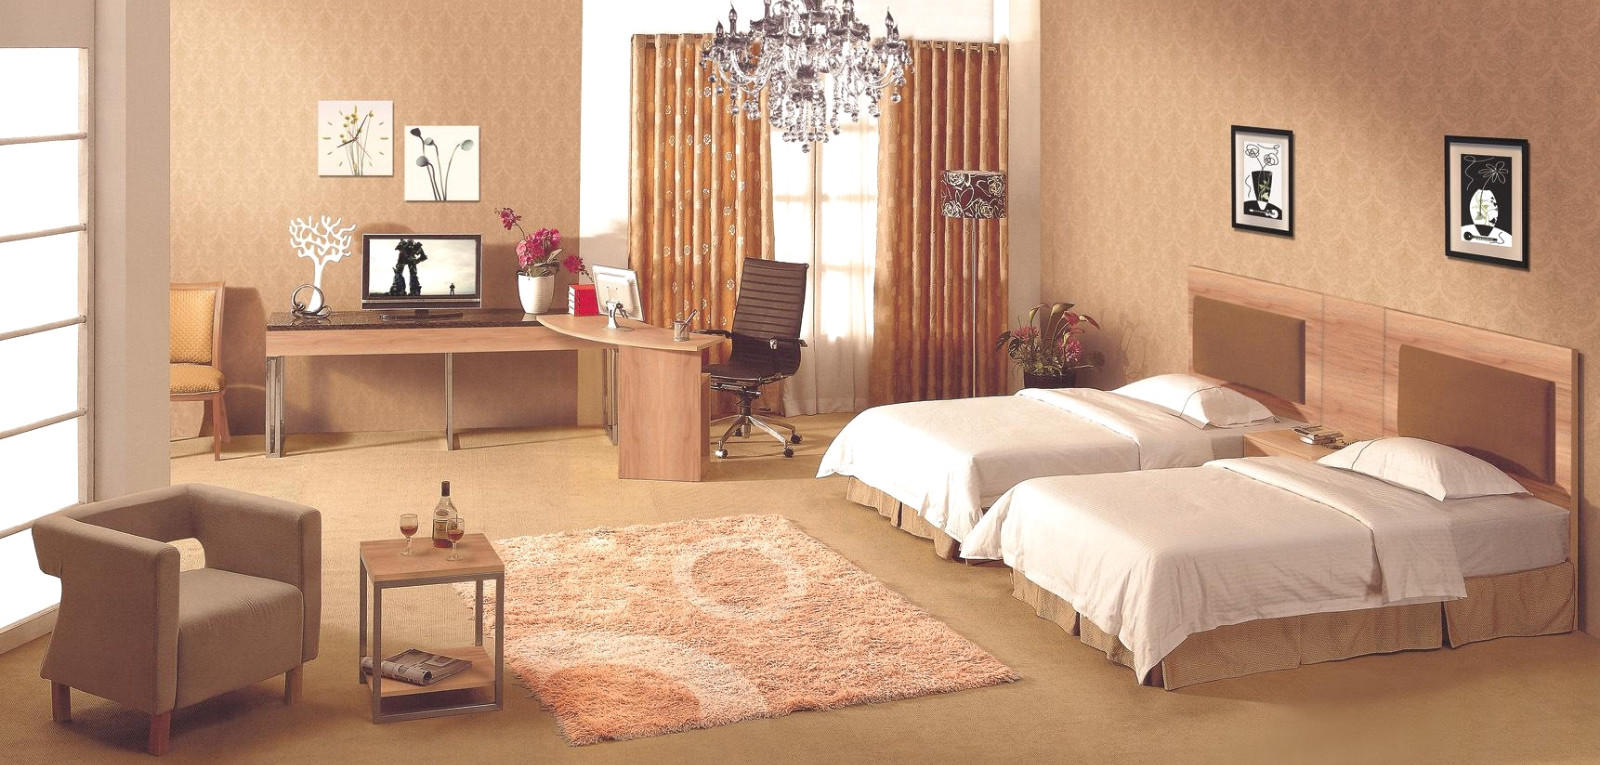 YSK Furniture hotel discount hotel furniture king for furnishings